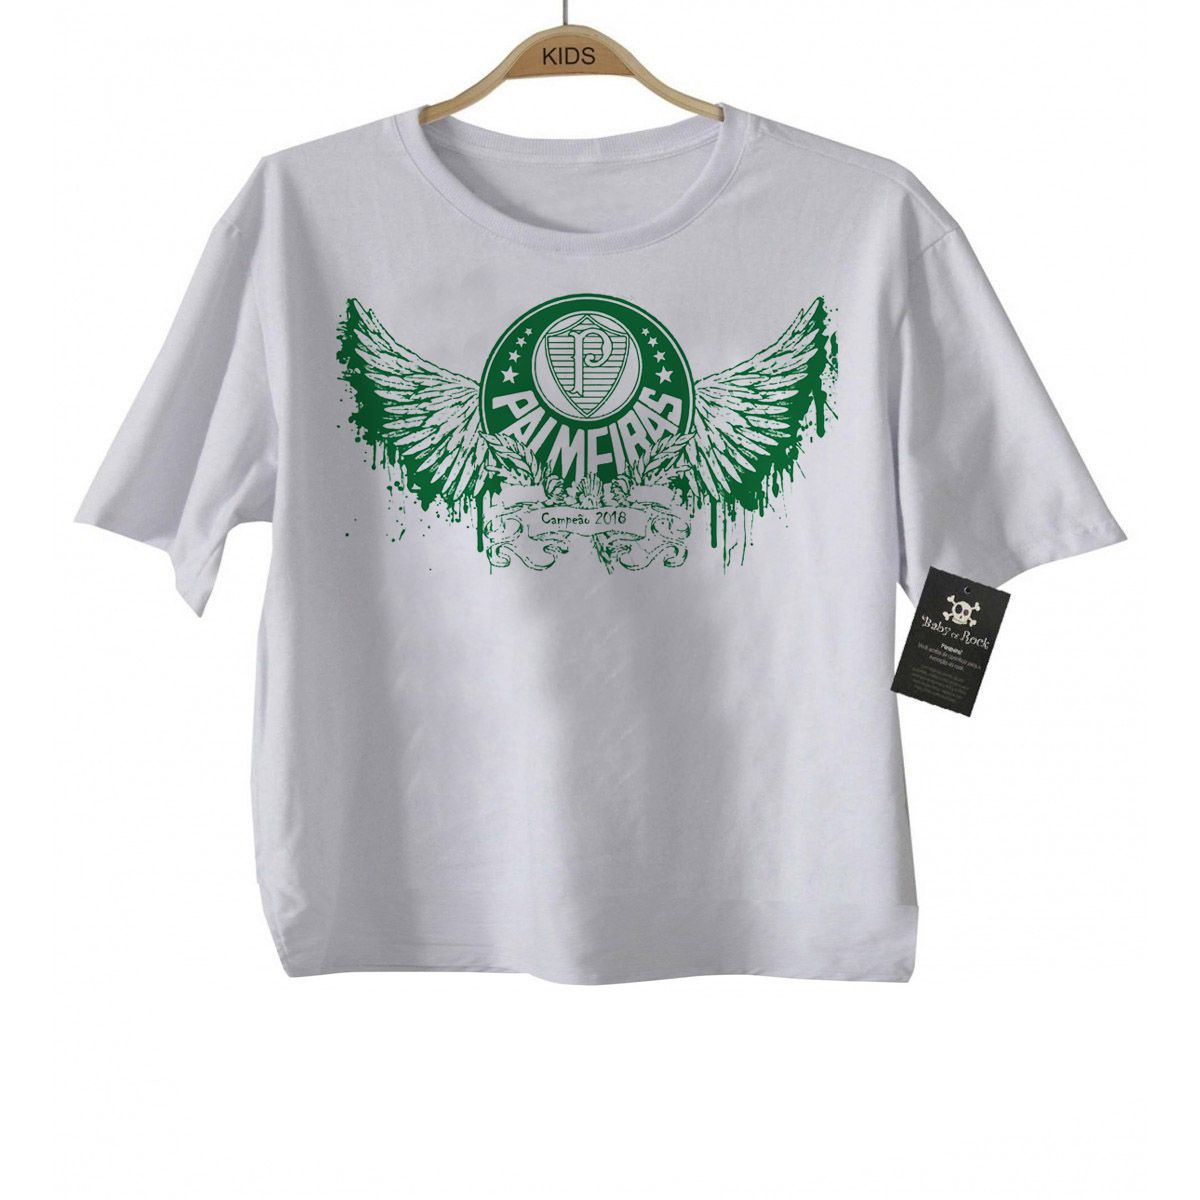 Camiseta Bebe  -  Palmeiras Fly  - White  - Baby Monster S/A